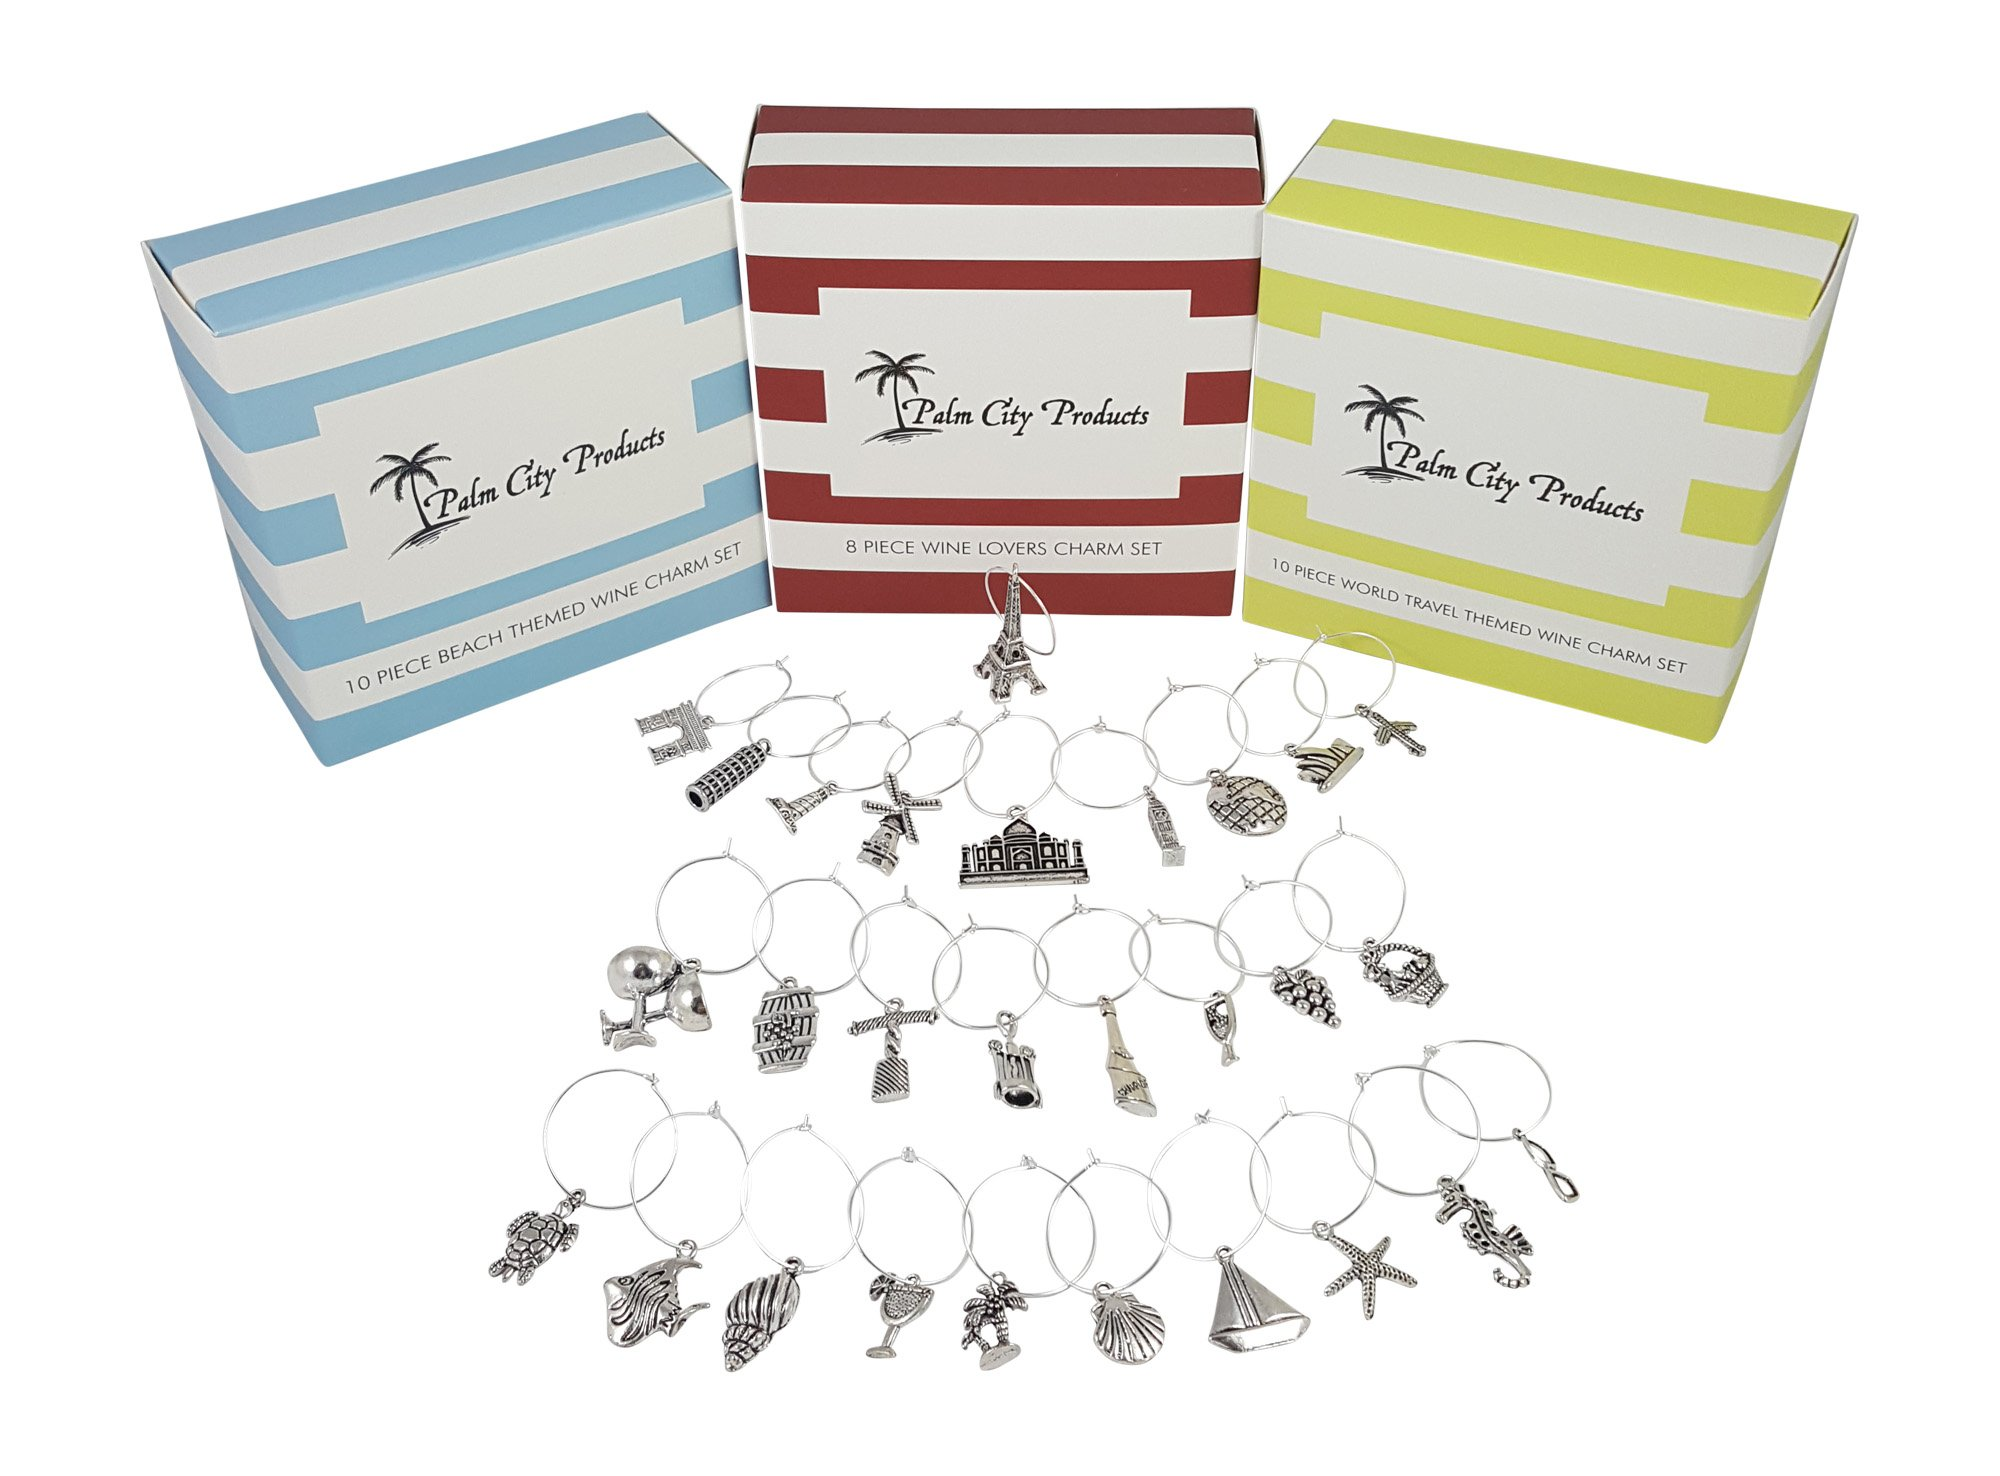 Deluxe Wine Charm Set - 28 Pieces Total includes Beach, Wine Lover, and World Traveler Themes by Palm City Products